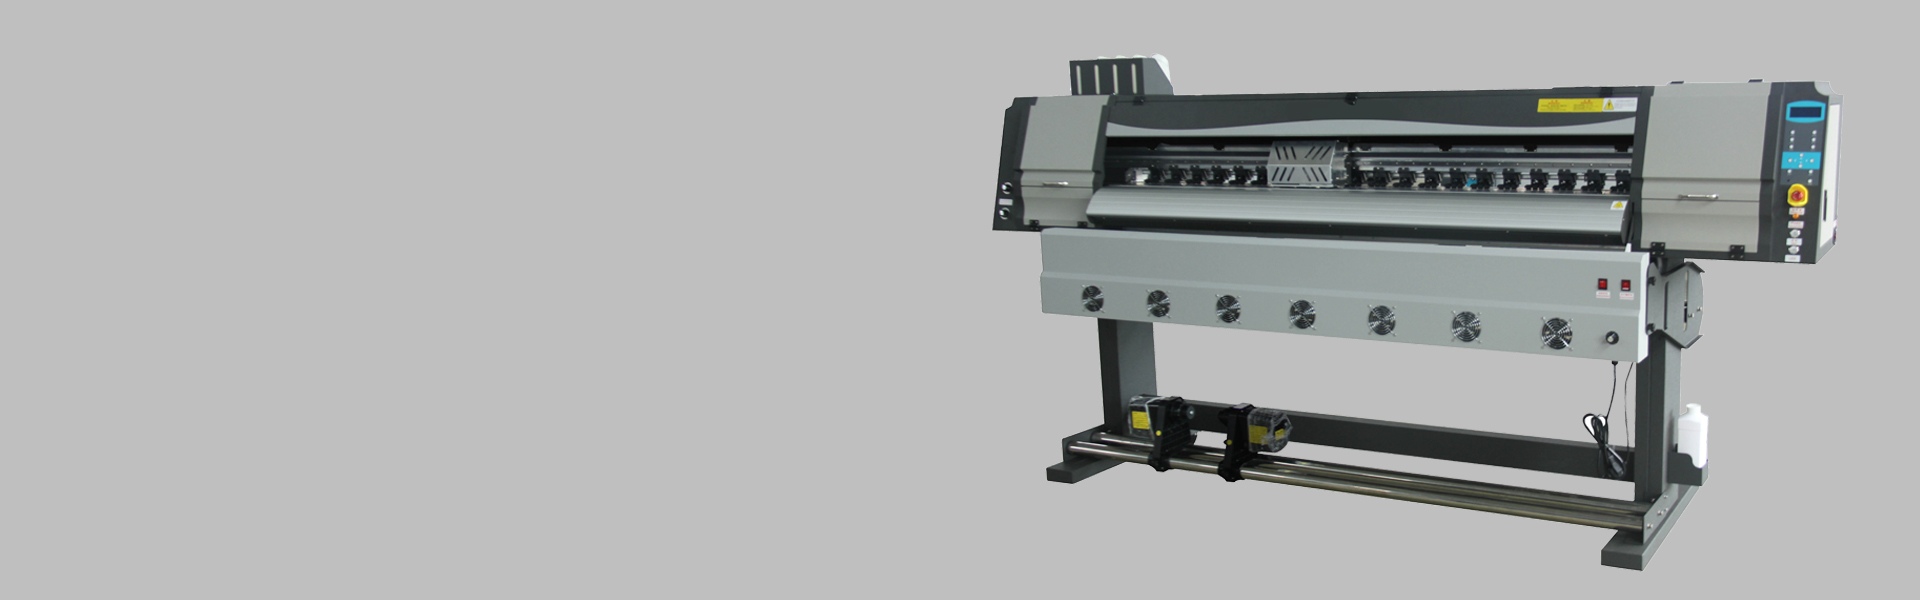 4720 sublimation printer